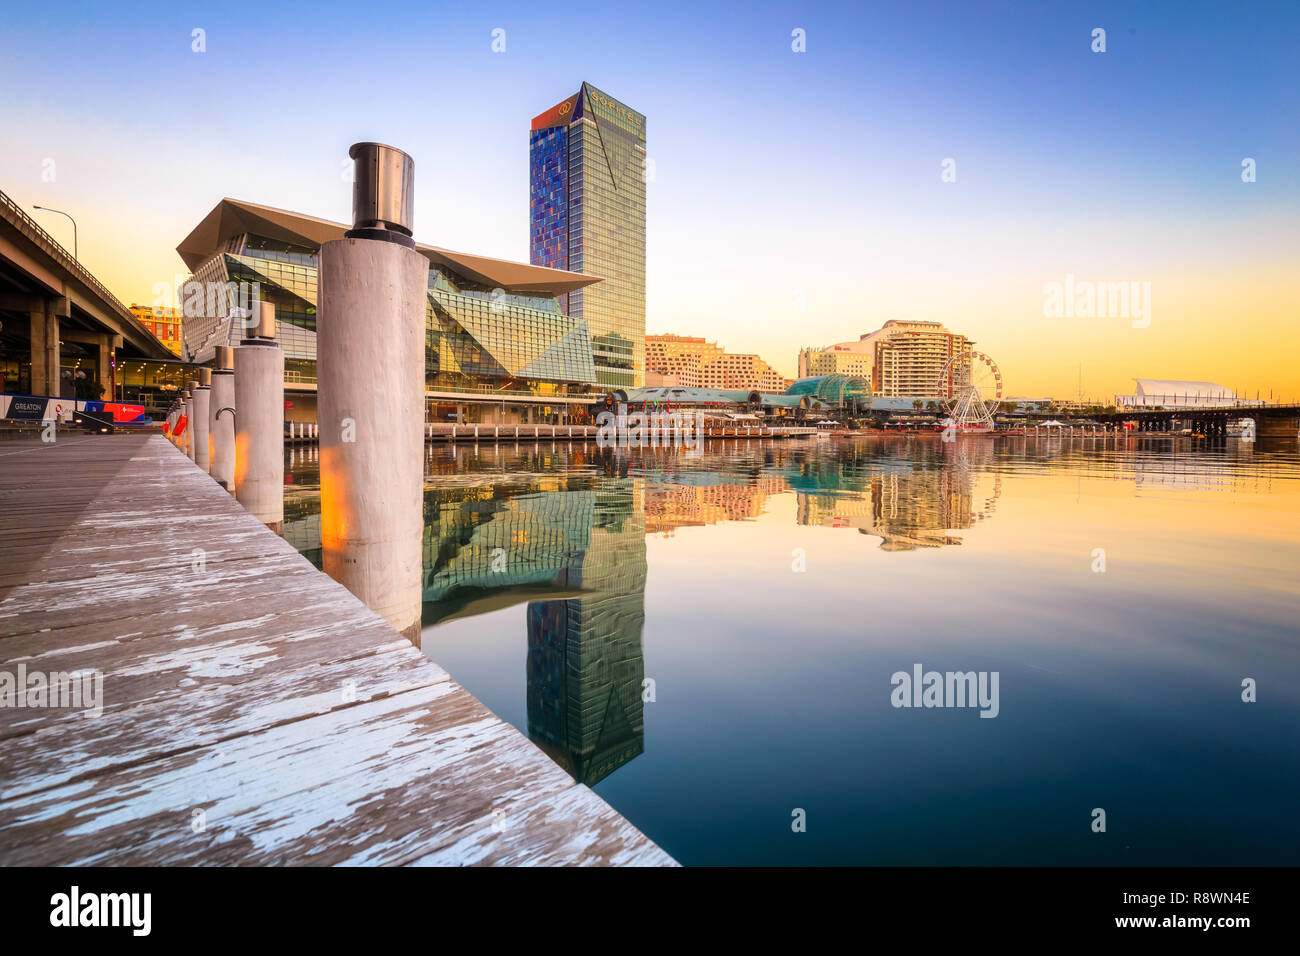 Darling Harbour Reflexion Stockbild